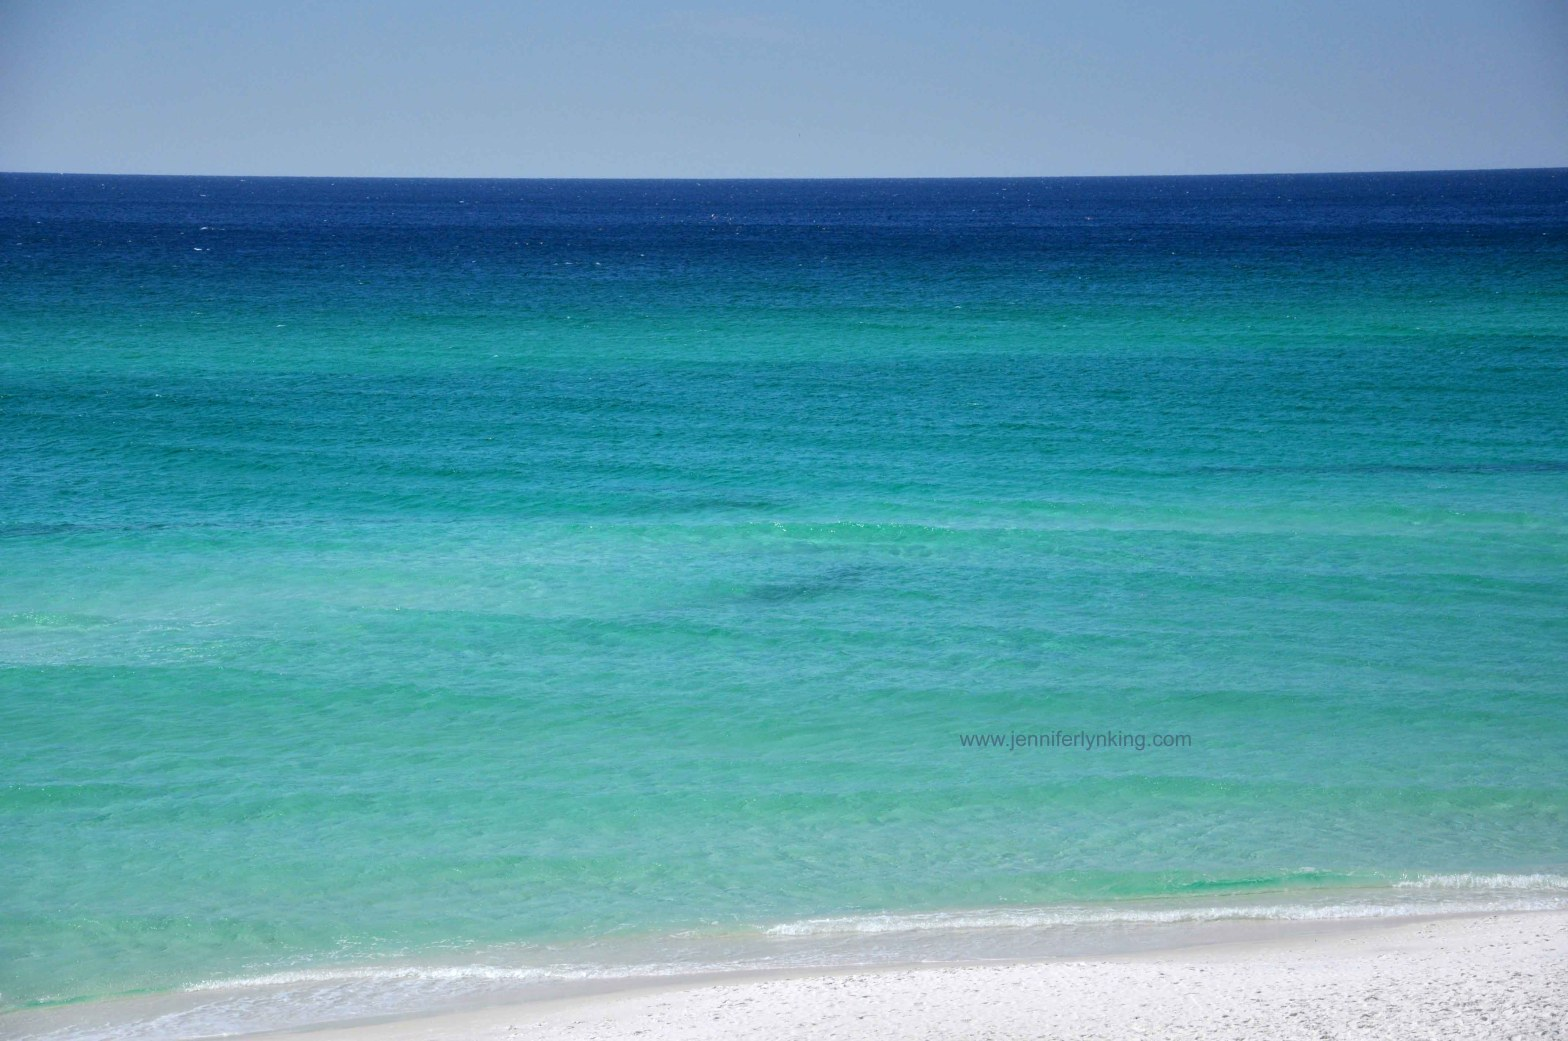 the Beach along 30A in Florida's Panhandle